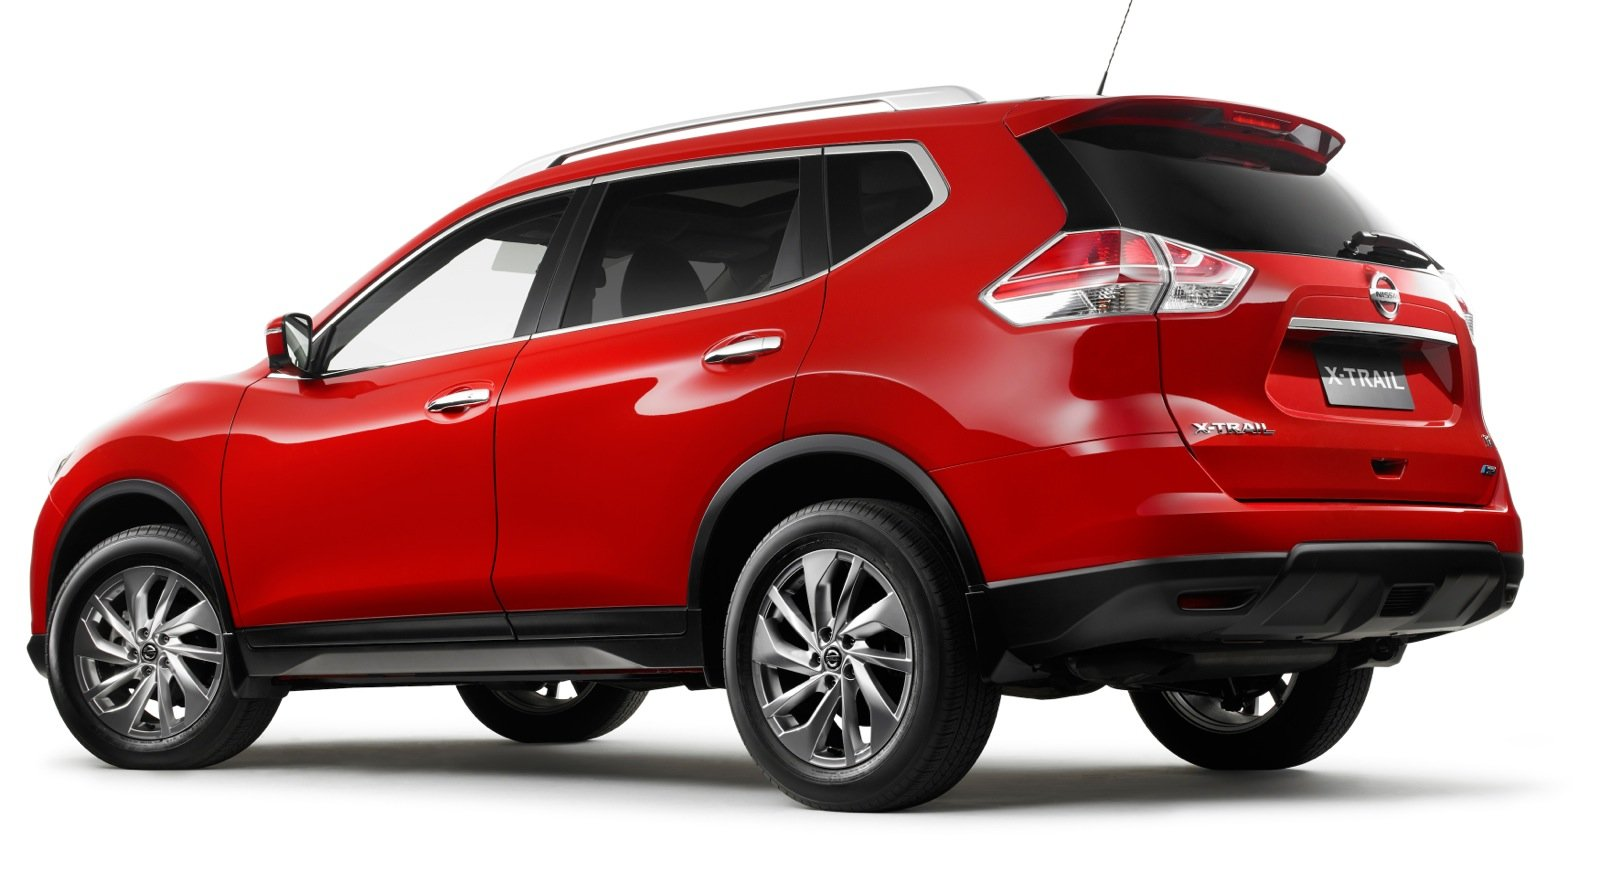 2014 Nissan X-Trail : Pricing And Specifications